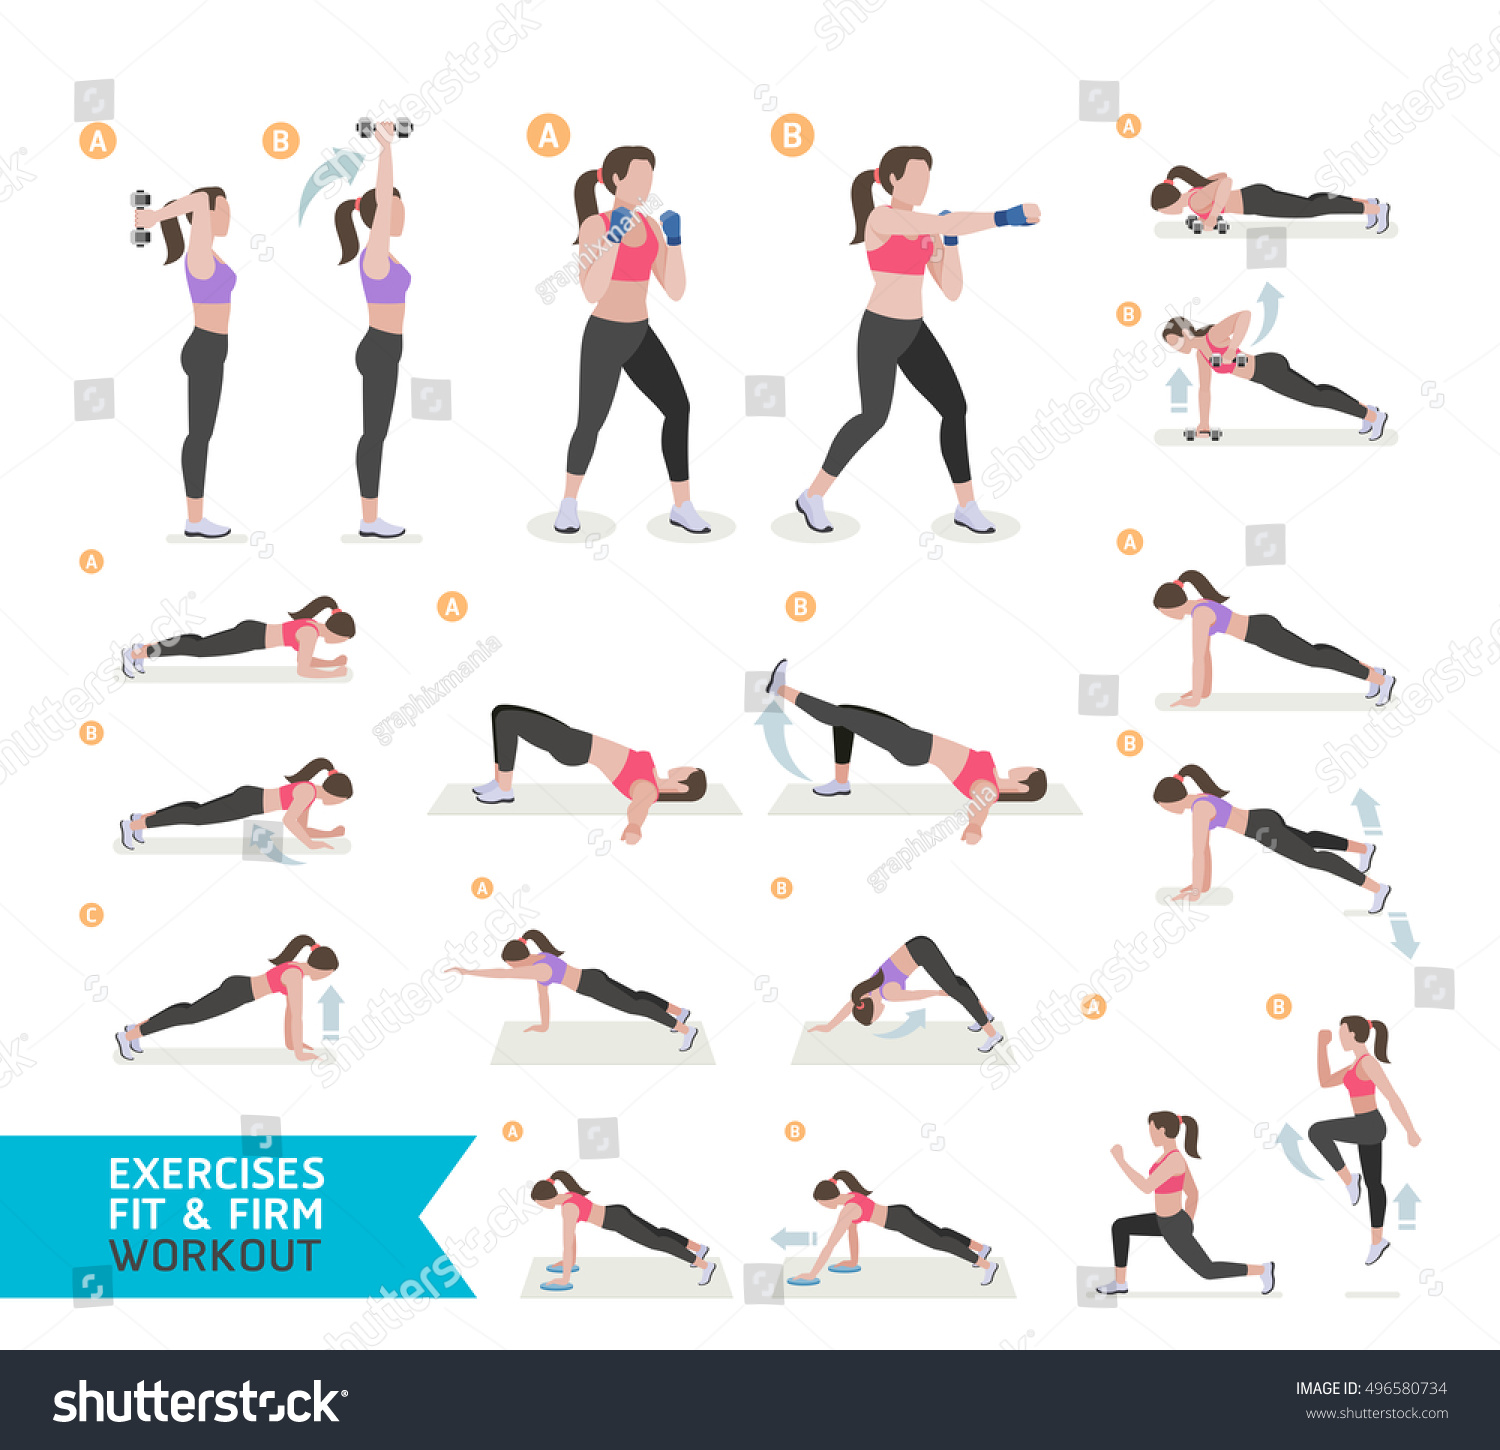 Woman Workout Fitness Cardio Boxing Aerobic Stock Vector ...